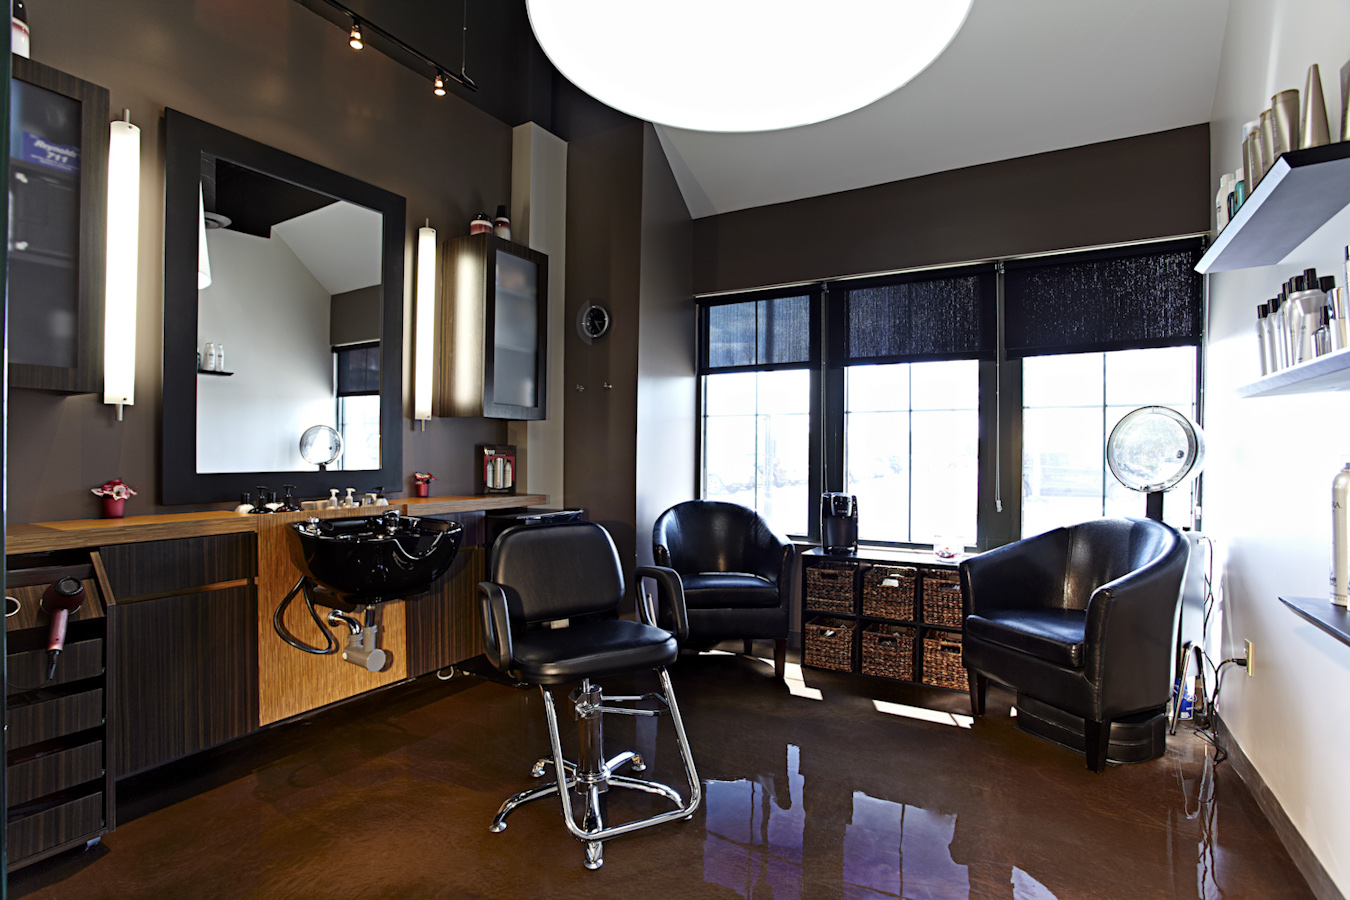 Image result for salon lofts